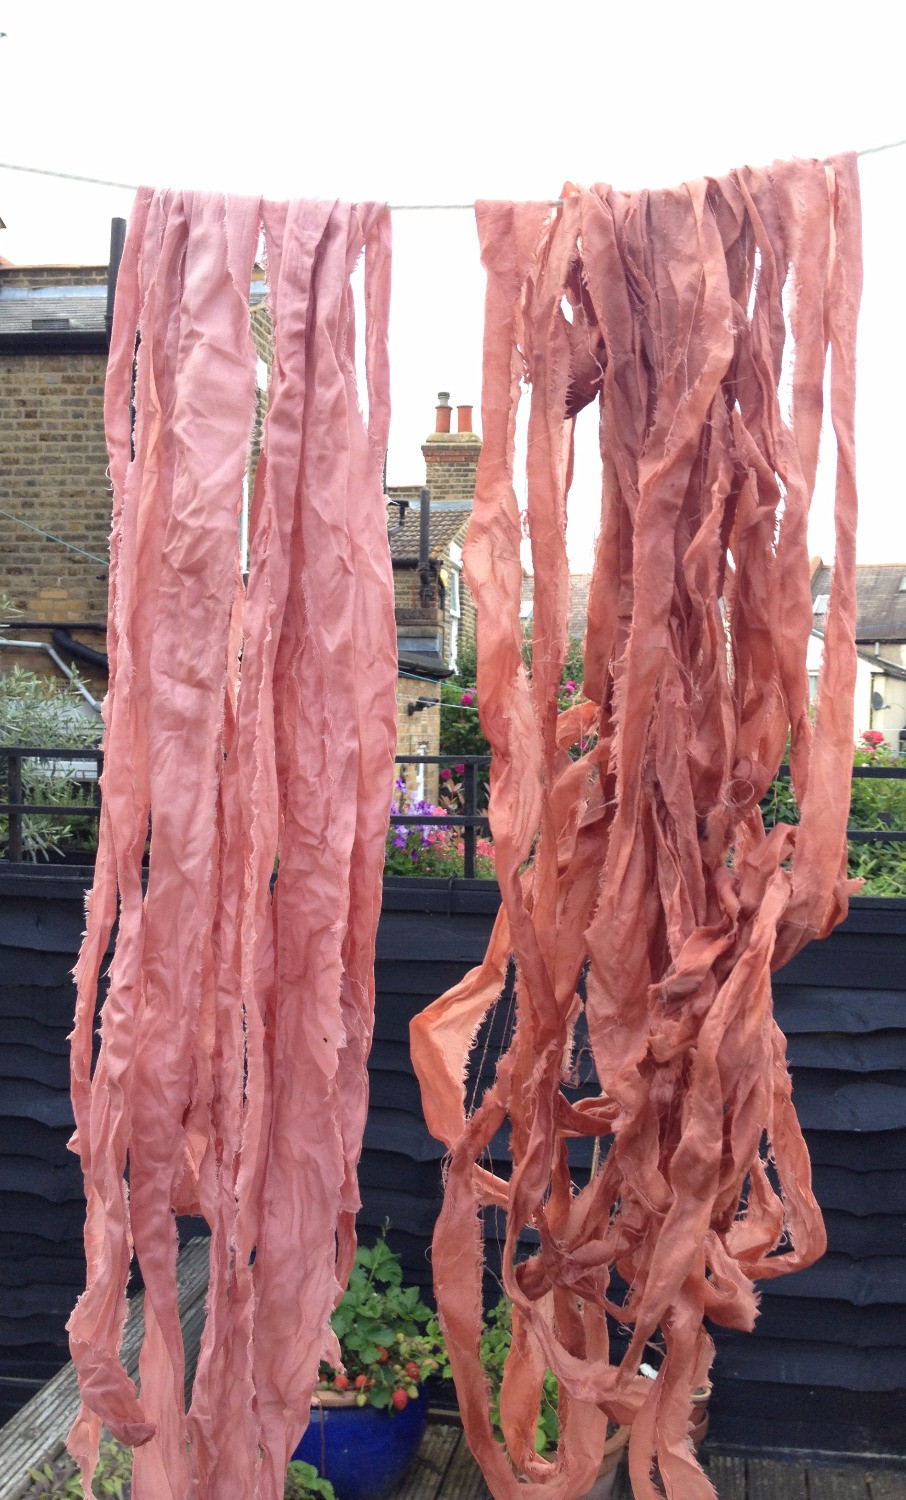 dyed ribbons drying